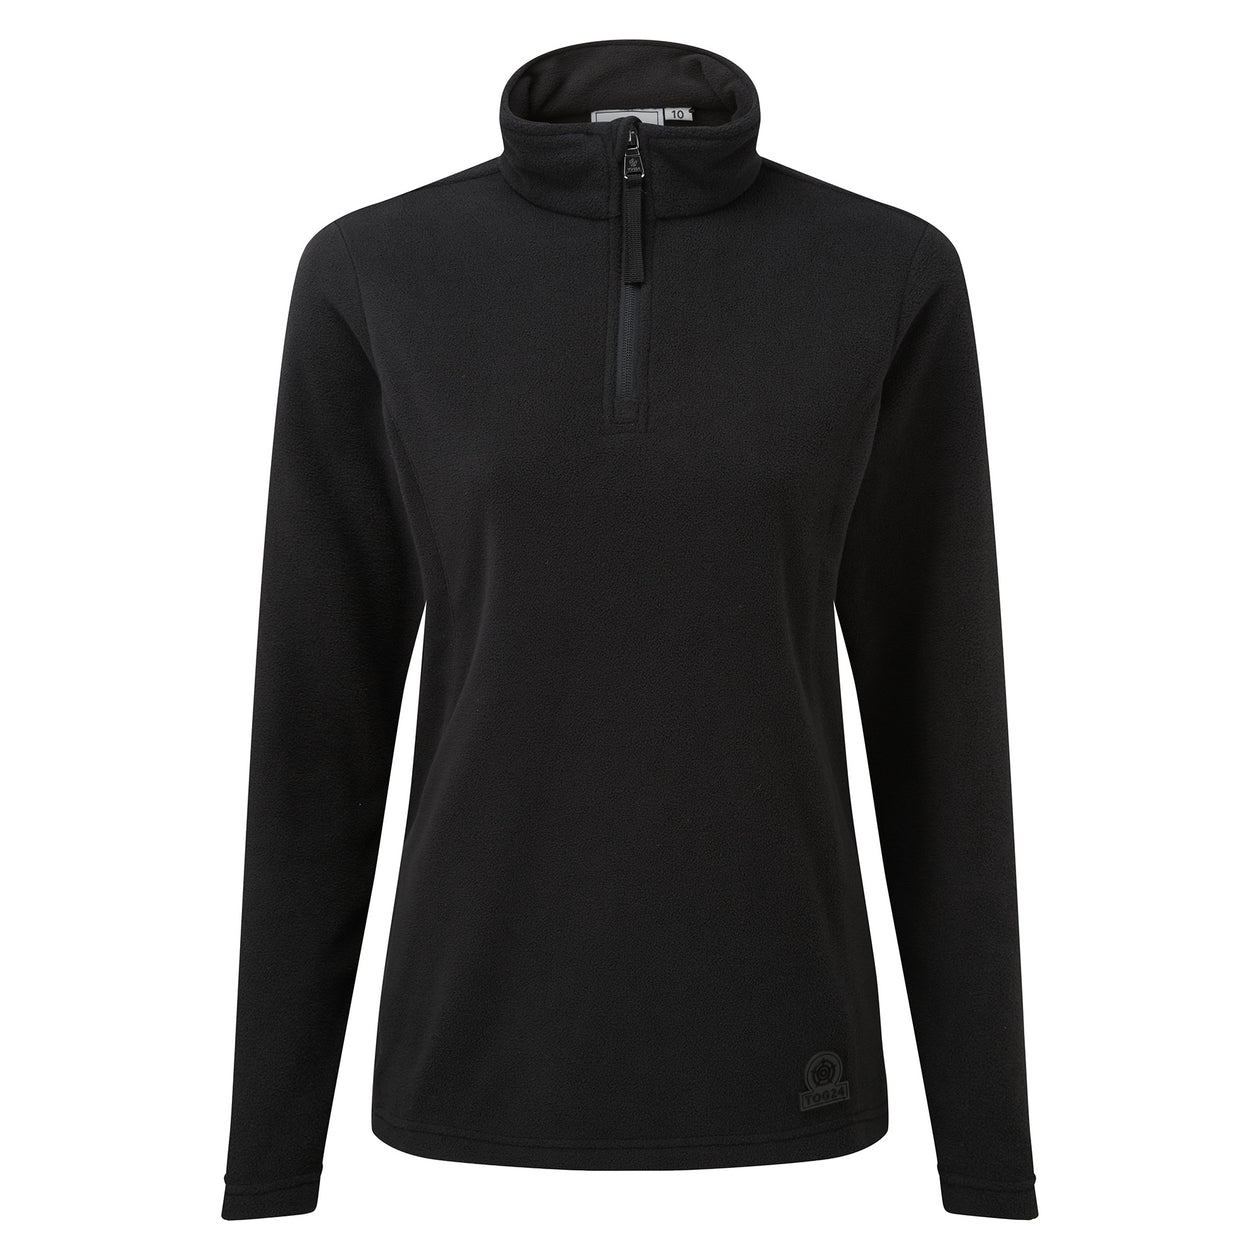 Treeton Womens Fleece Zipneck Black image 4